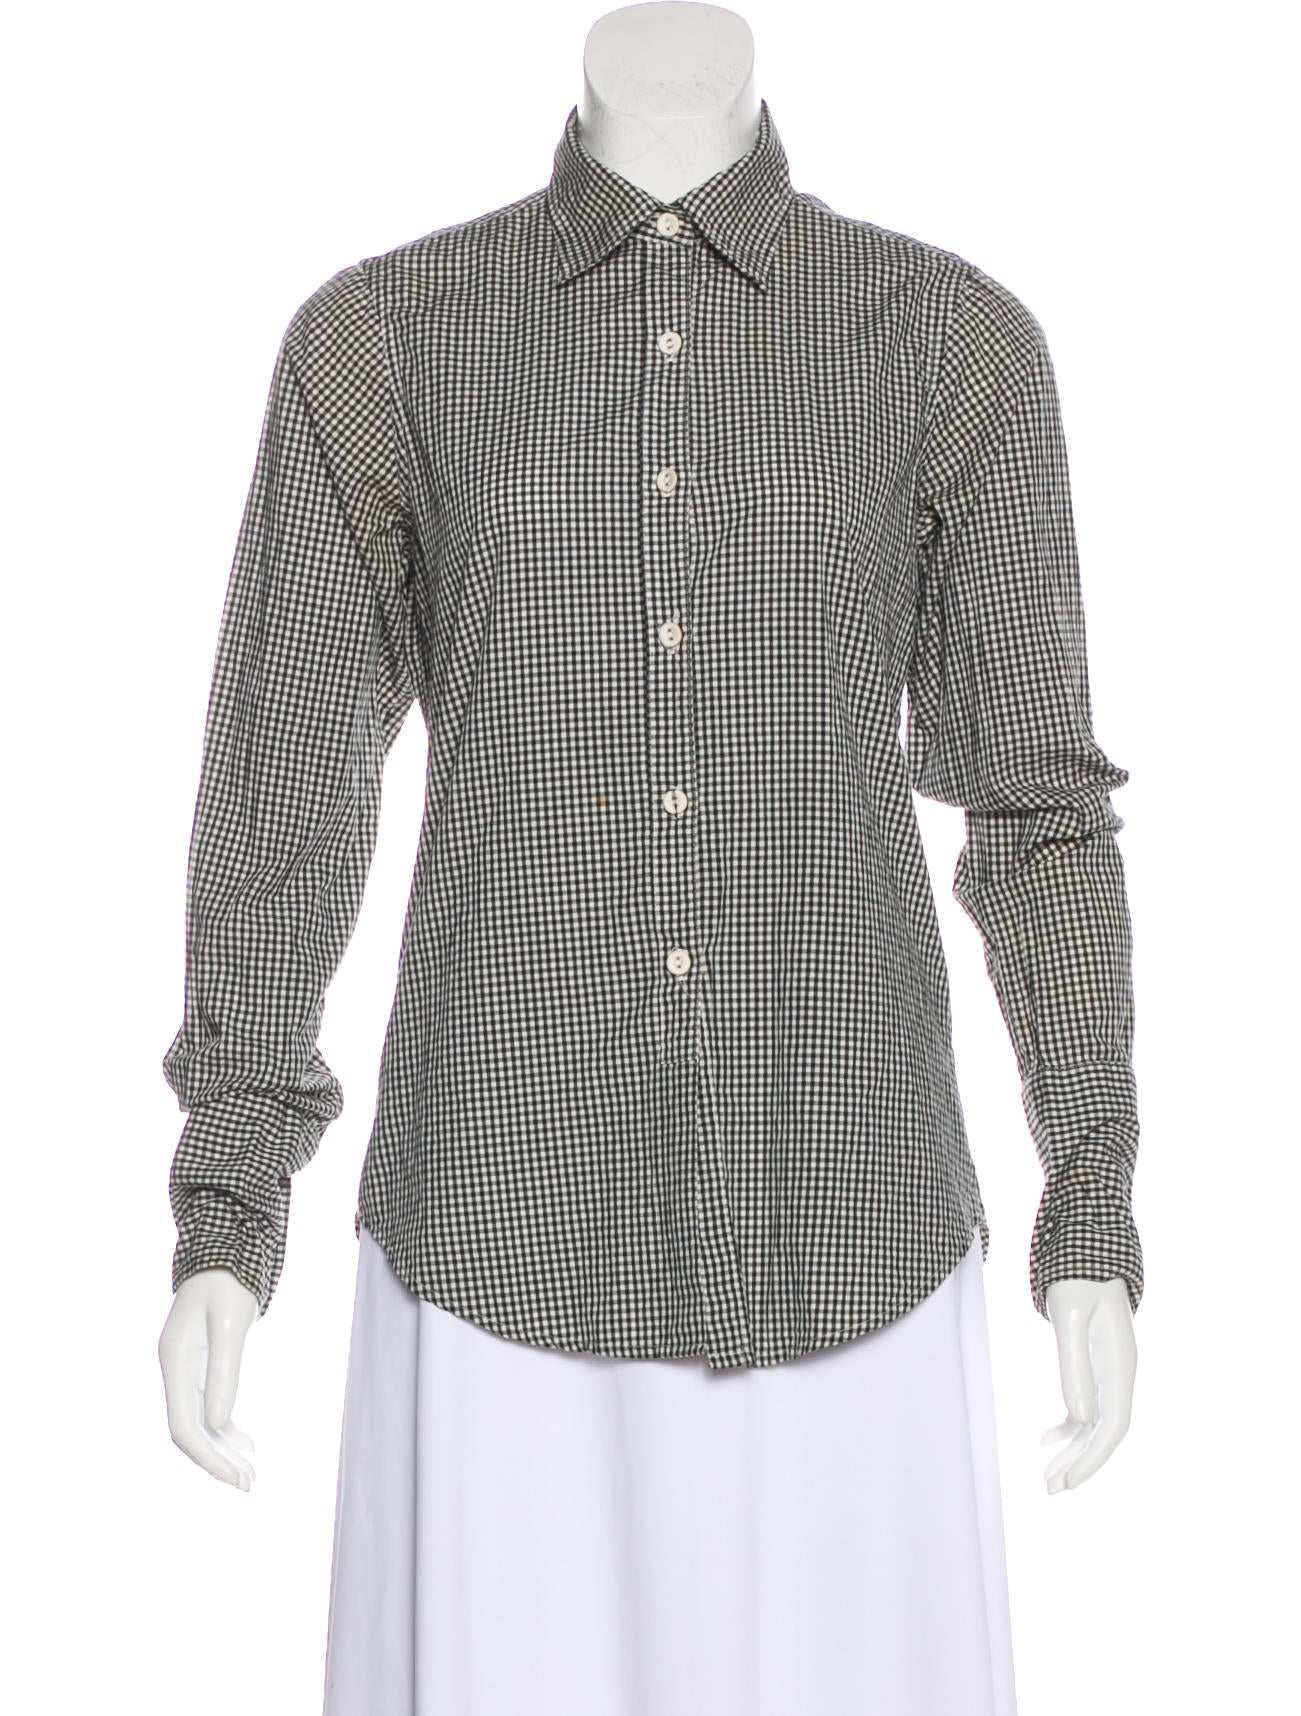 Clearance High Quality Get Authentic Sale Online Nili Lotan Gingham Button-Up Comfortable Sale Online Shop Visa Payment Sale Online G4y0wwe3VW